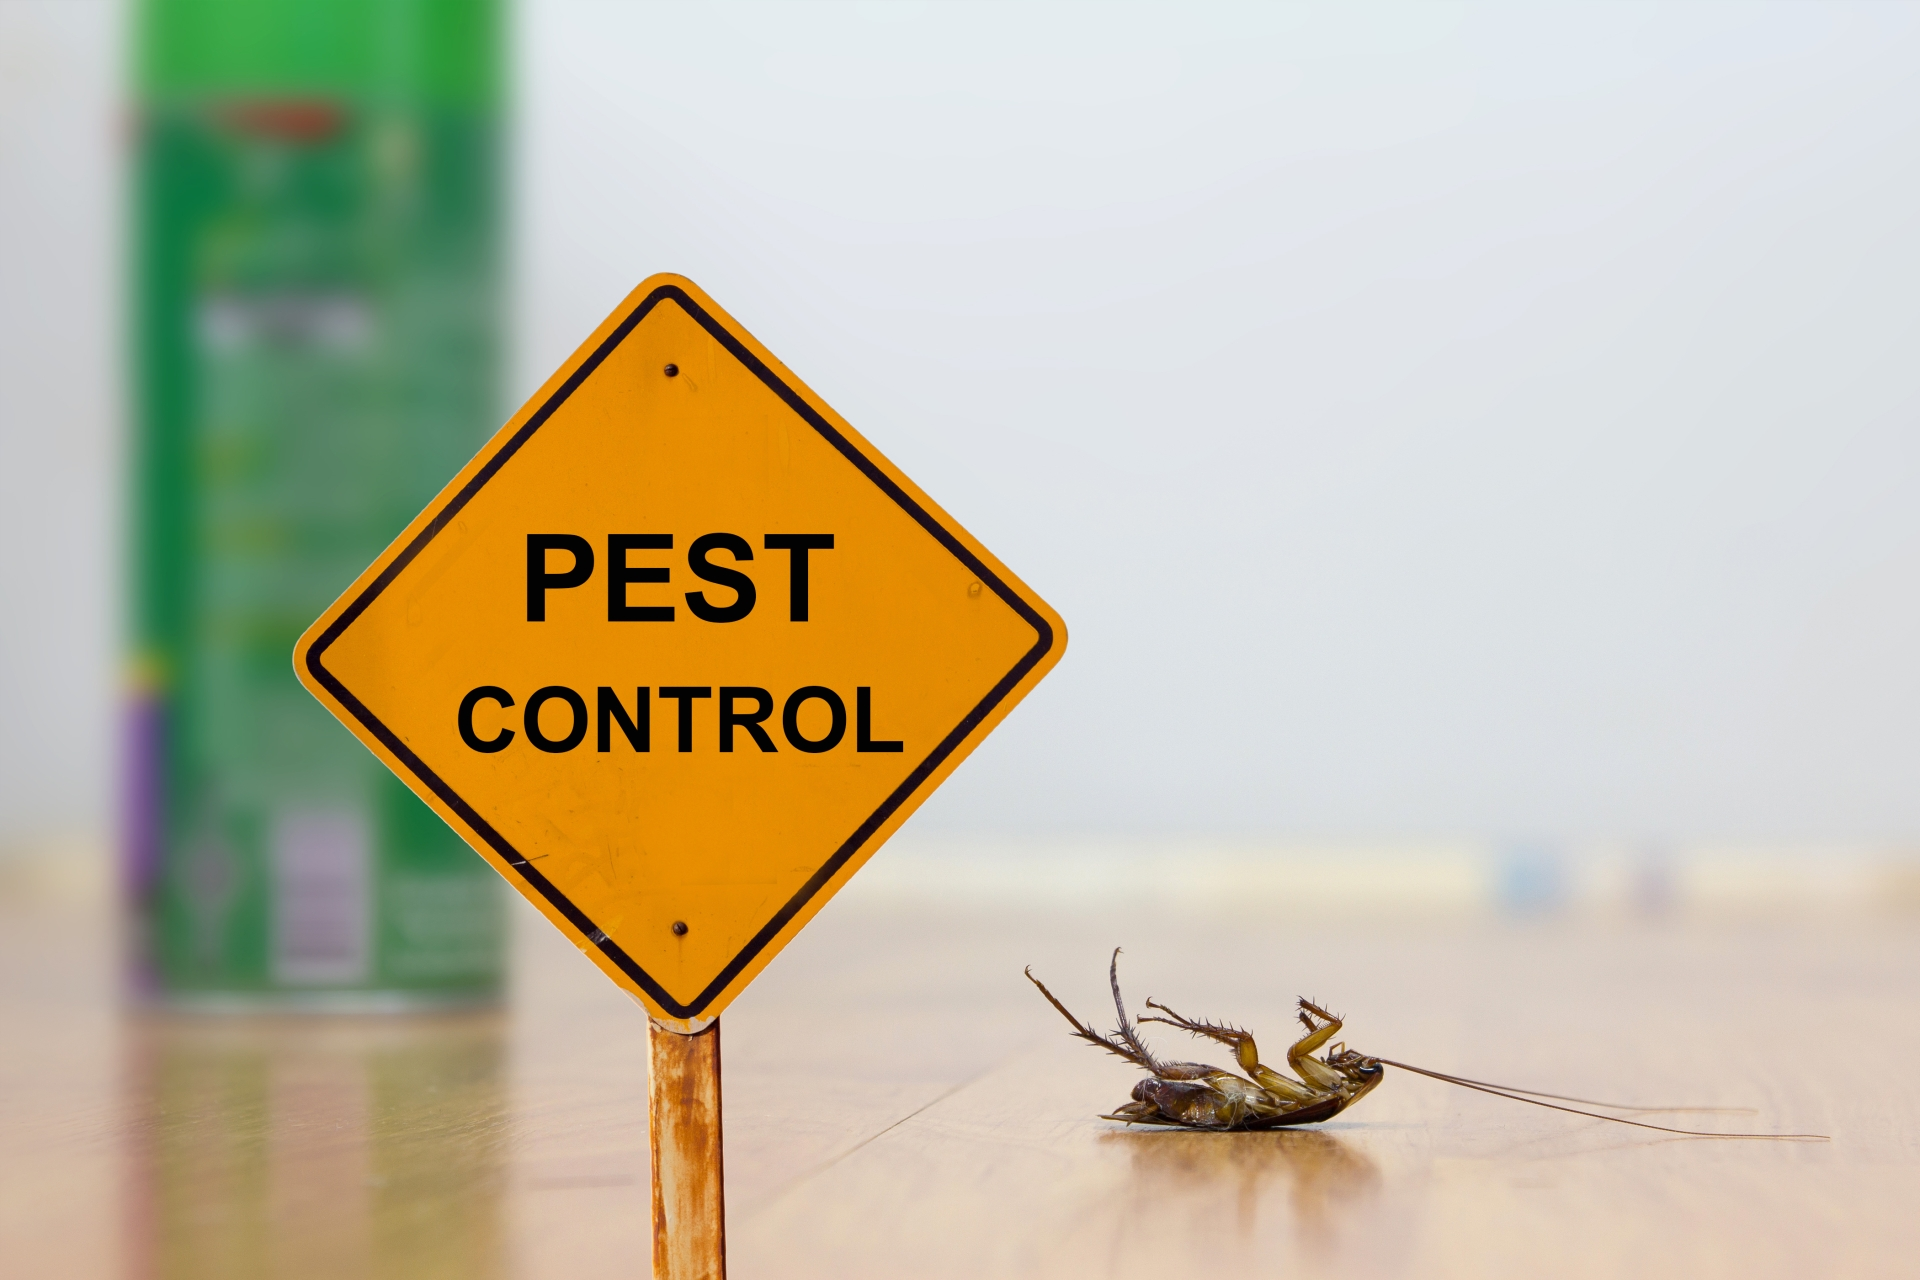 24 Hour Pest Control, Pest Control in Northwood, Moor Park, HA6. Call Now 020 8166 9746